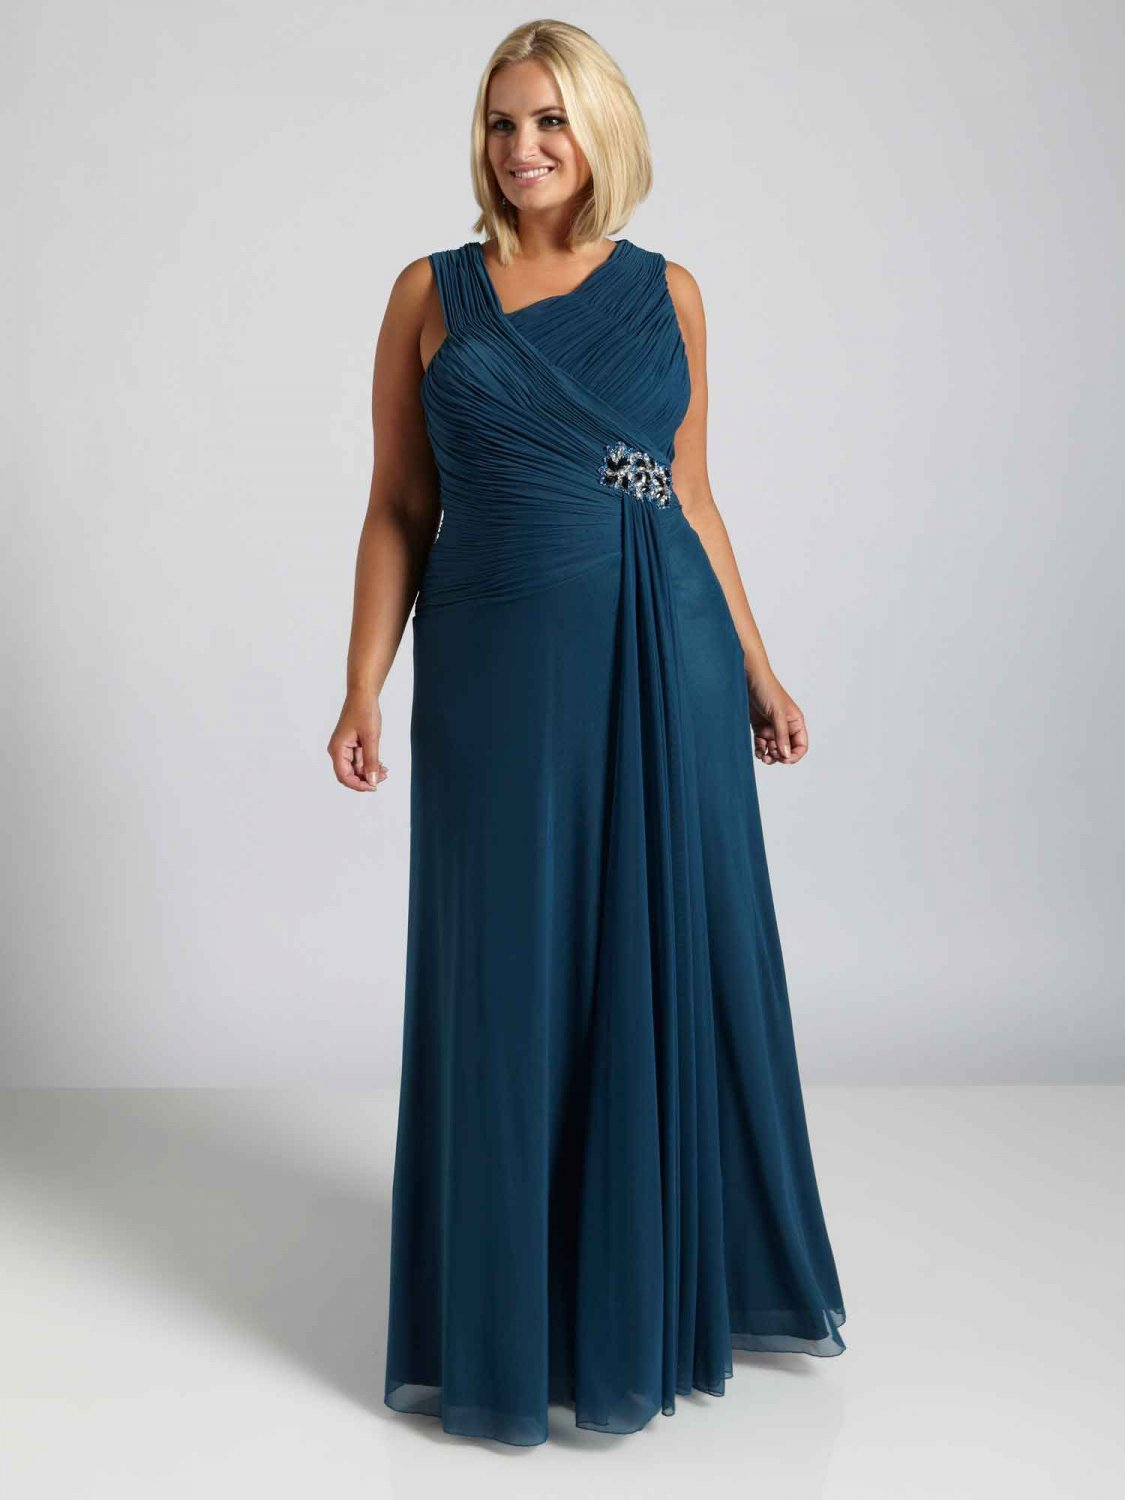 #2013-E47 x | Plus Size Ball Gowns for fuller figured women